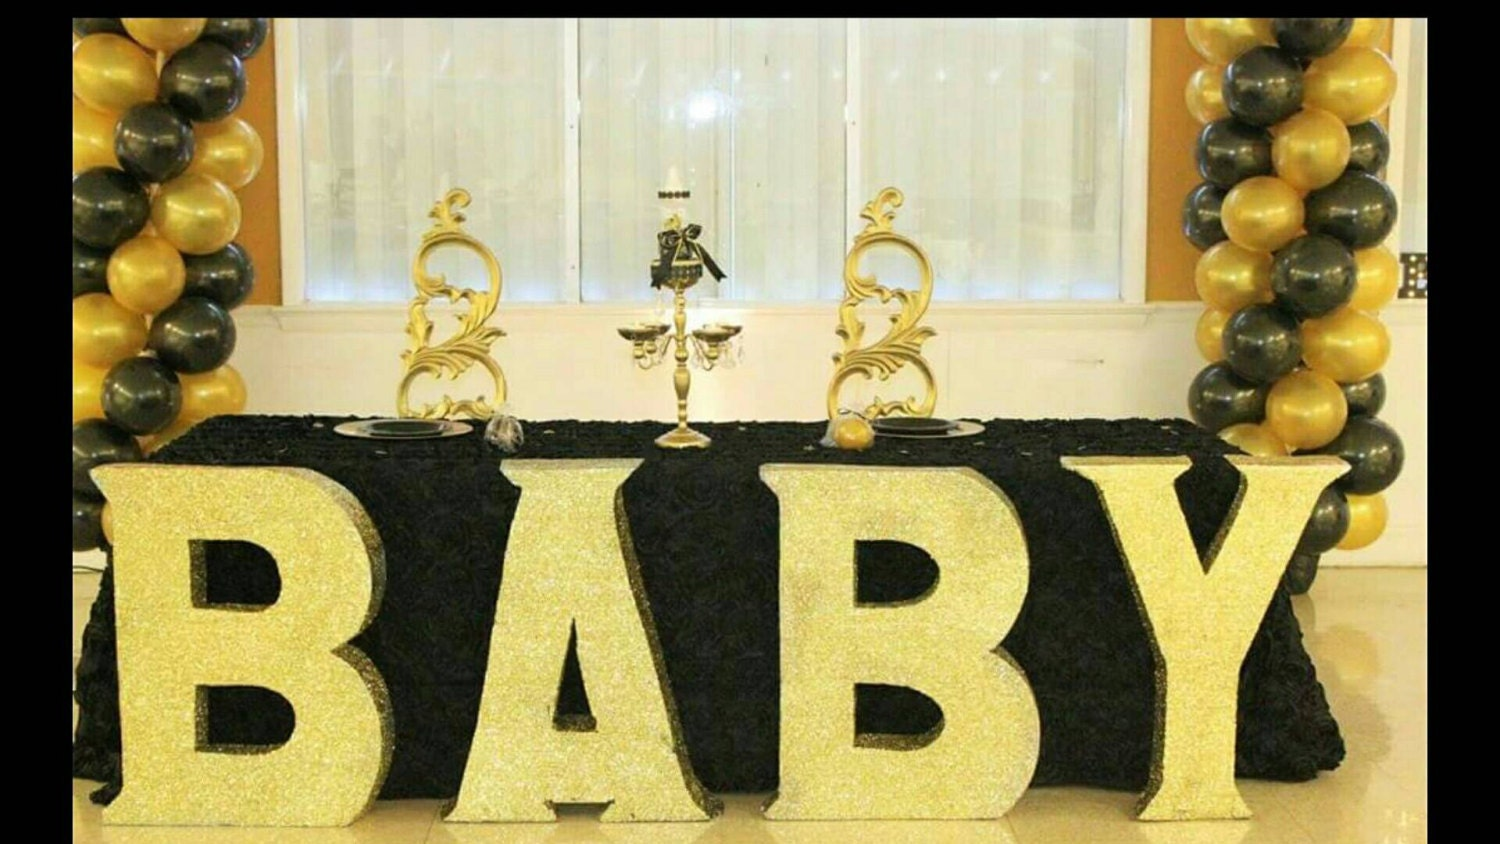 baby large baby block letters free standing letters white block letters pool letters floating letters baby reveal baby shower